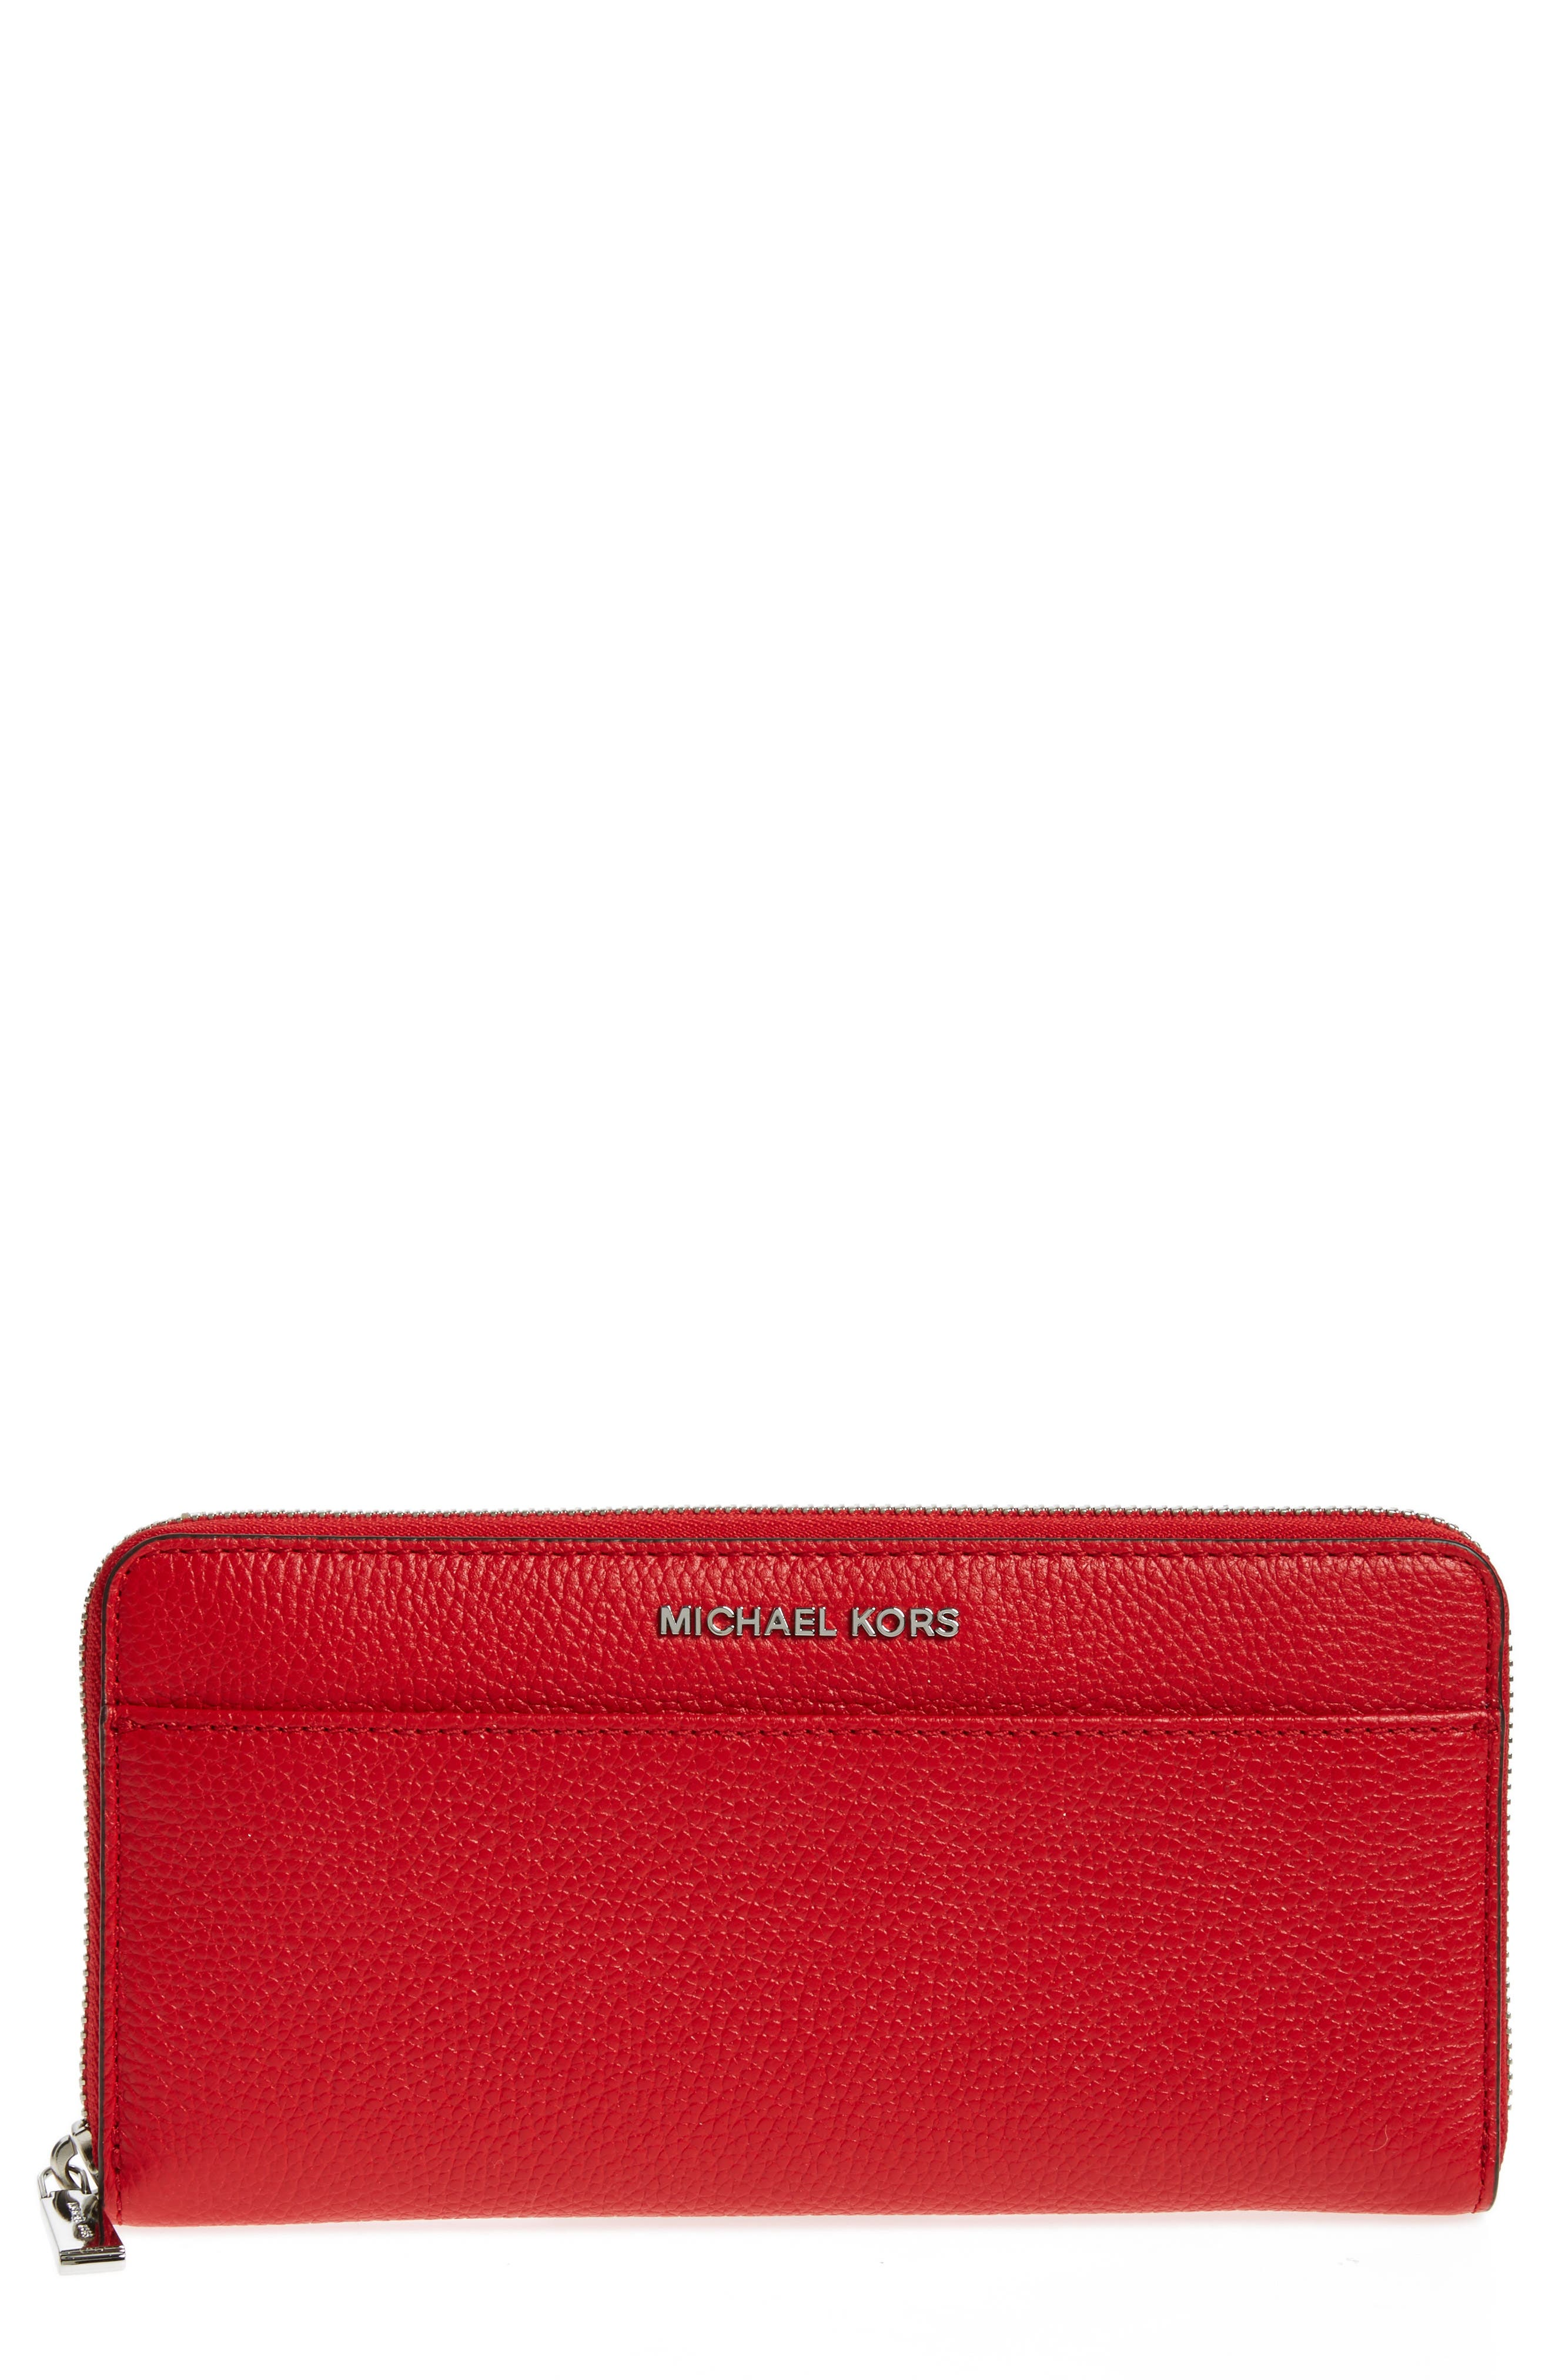 Mercer Leather Continental Wallet,                             Main thumbnail 3, color,